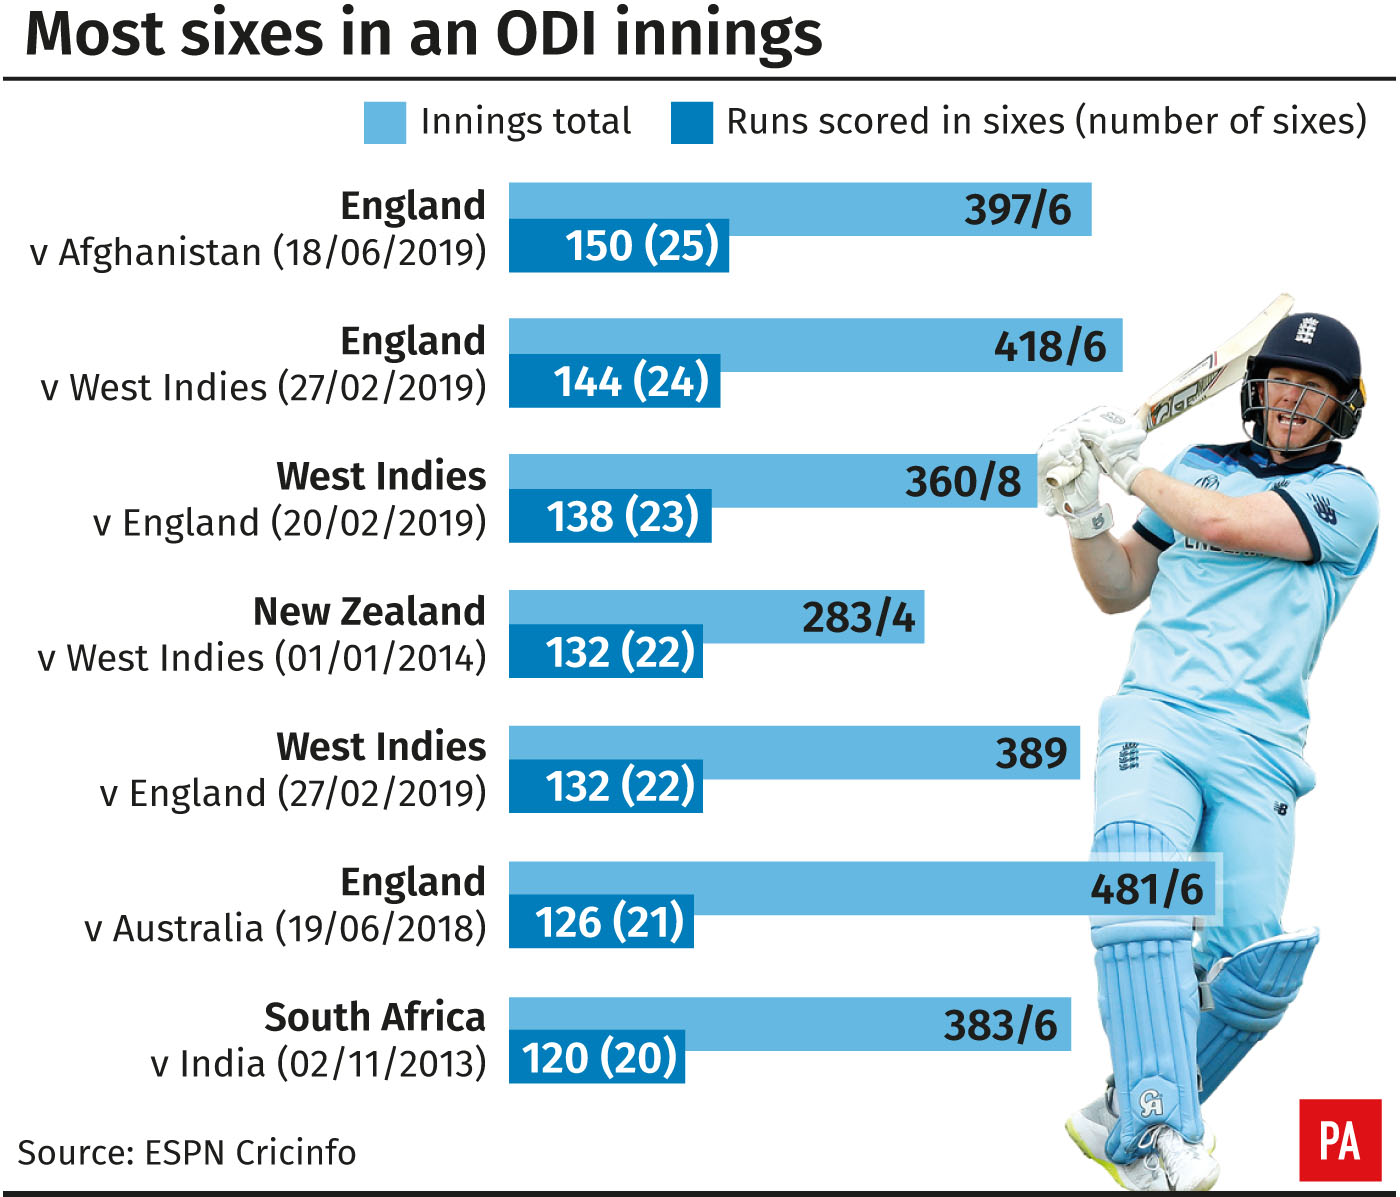 Most sixes in a one-day international innings